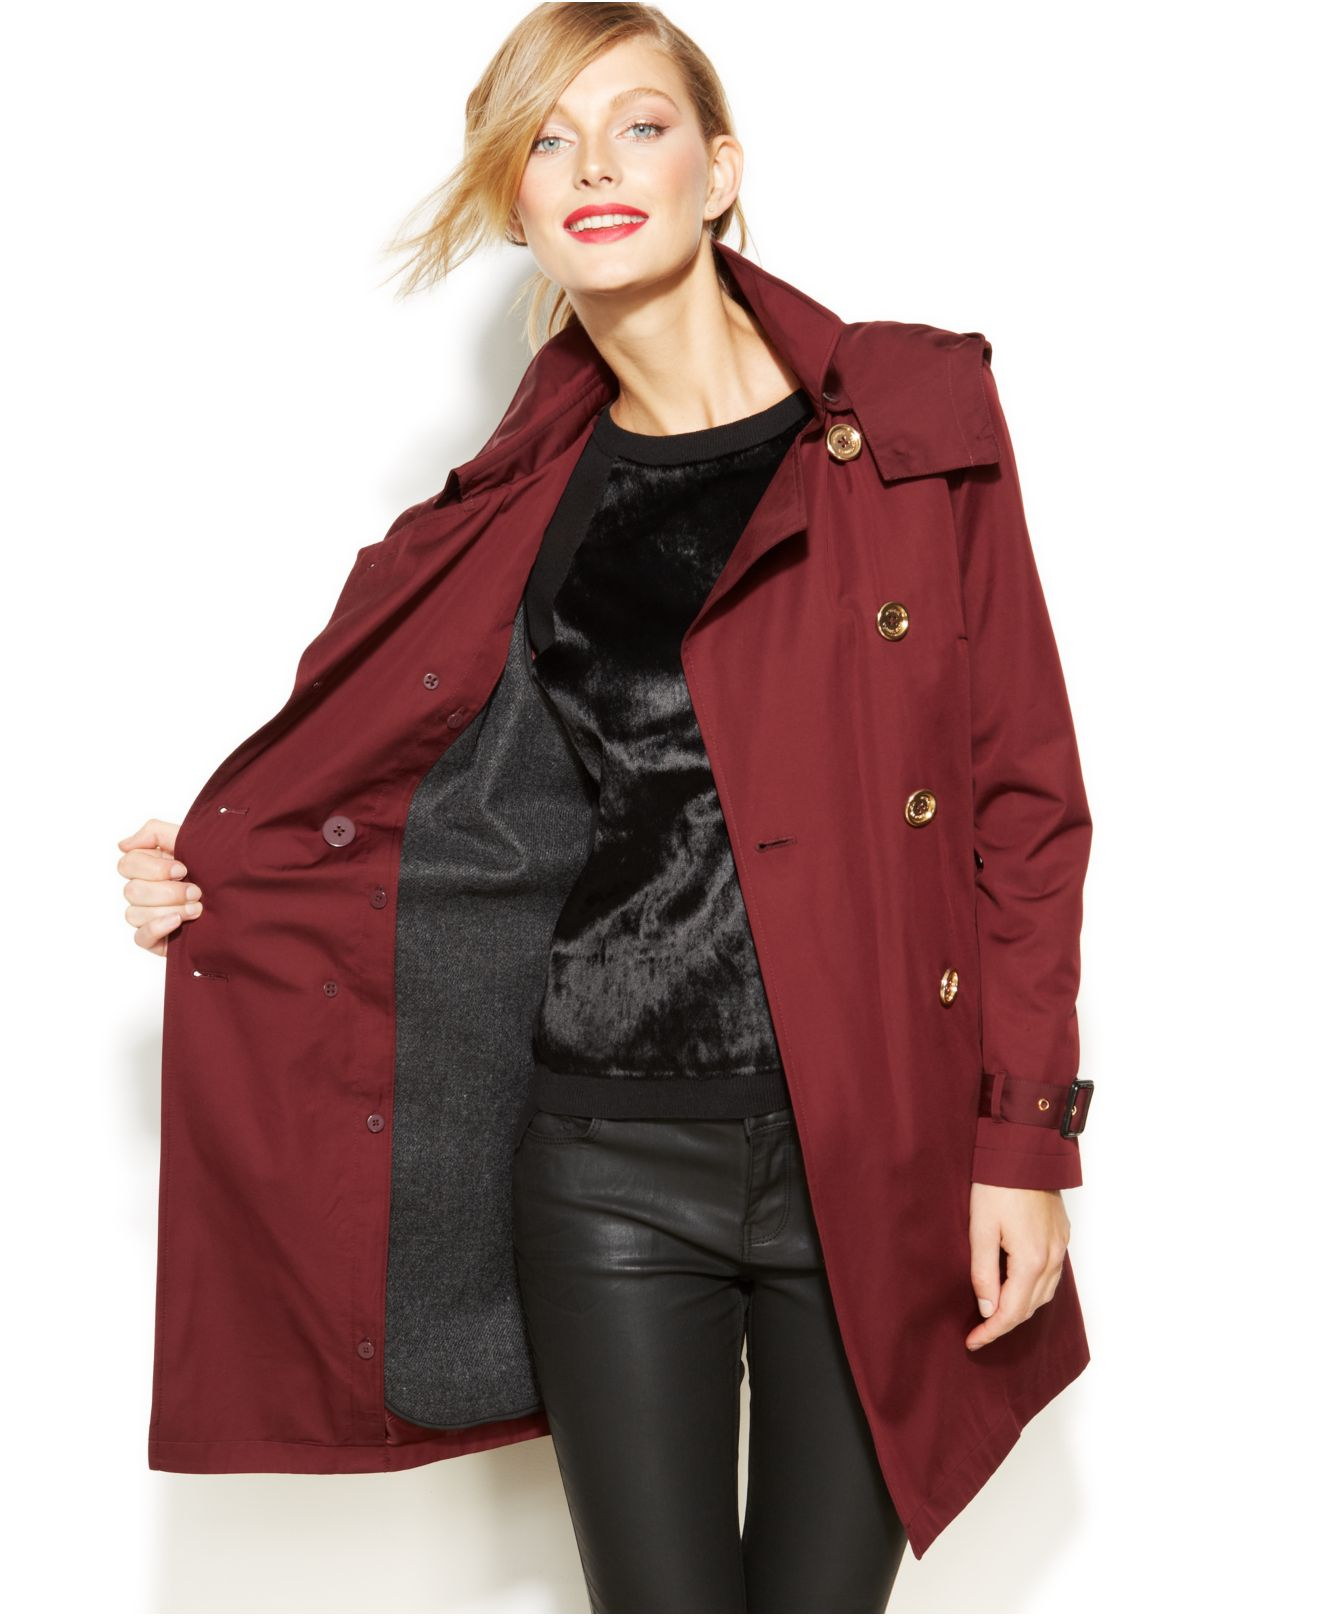 e995ceebac3 Lyst - Michael Kors Michael Removable-Liner Trench Coat in Red